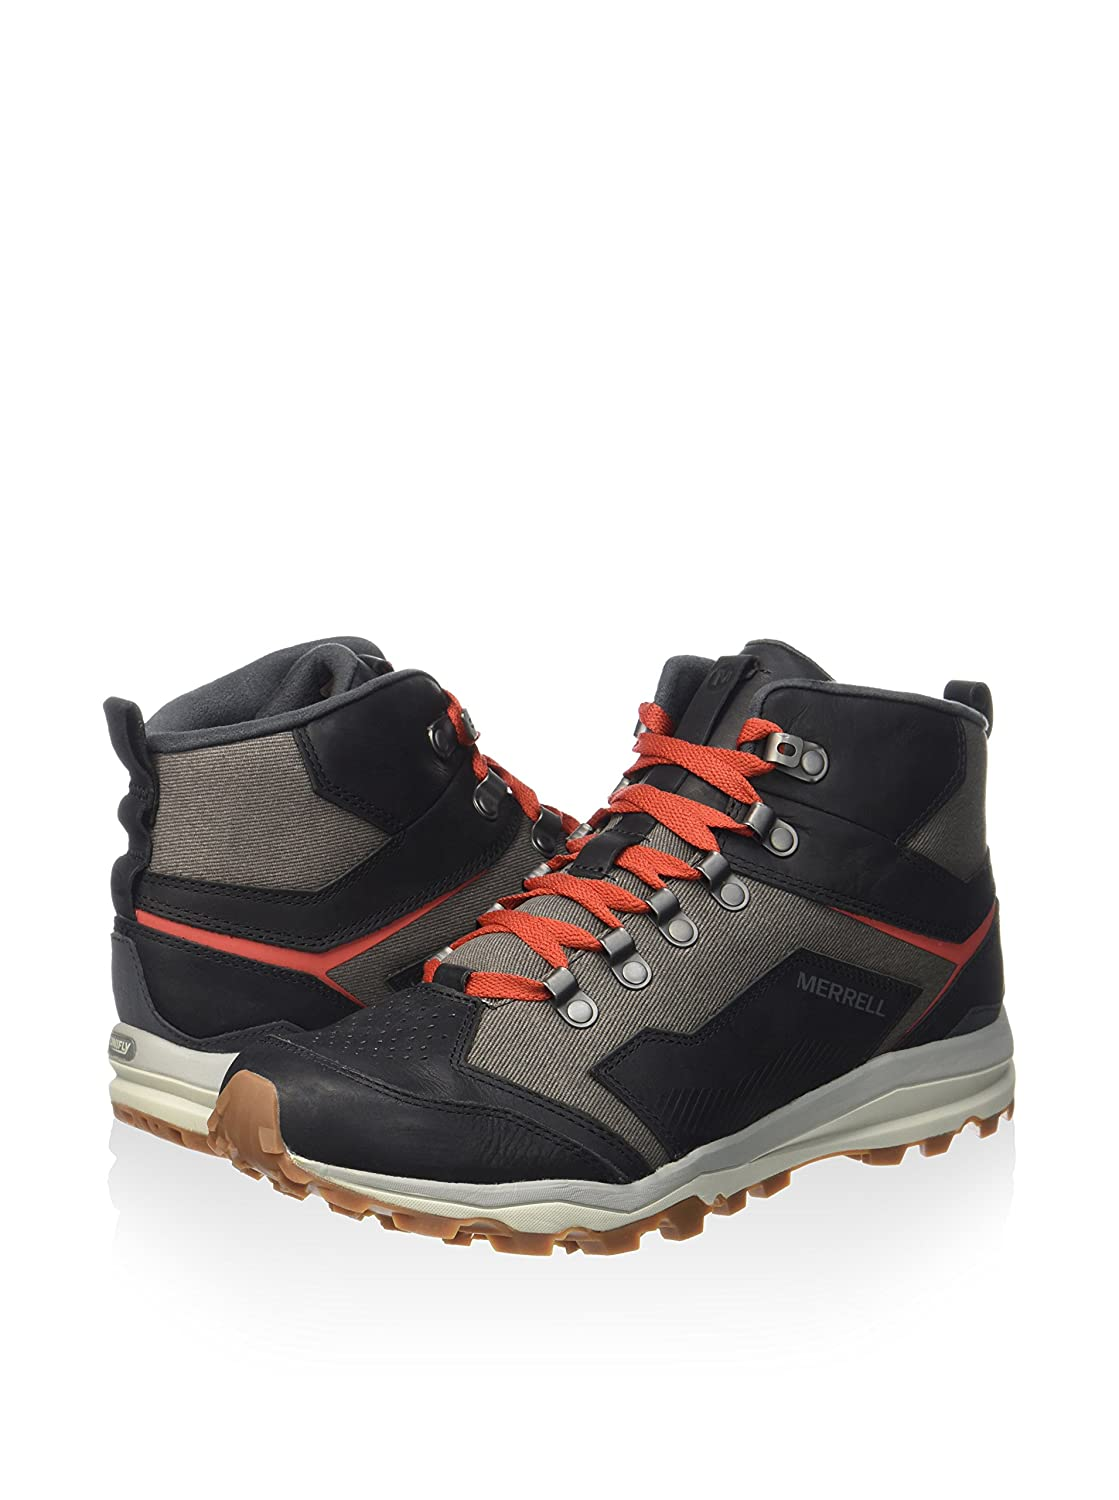 375a5ad2af Merrell Scarponcino Outdoor all out Crusher Mid M Nero/Grigio EU ...